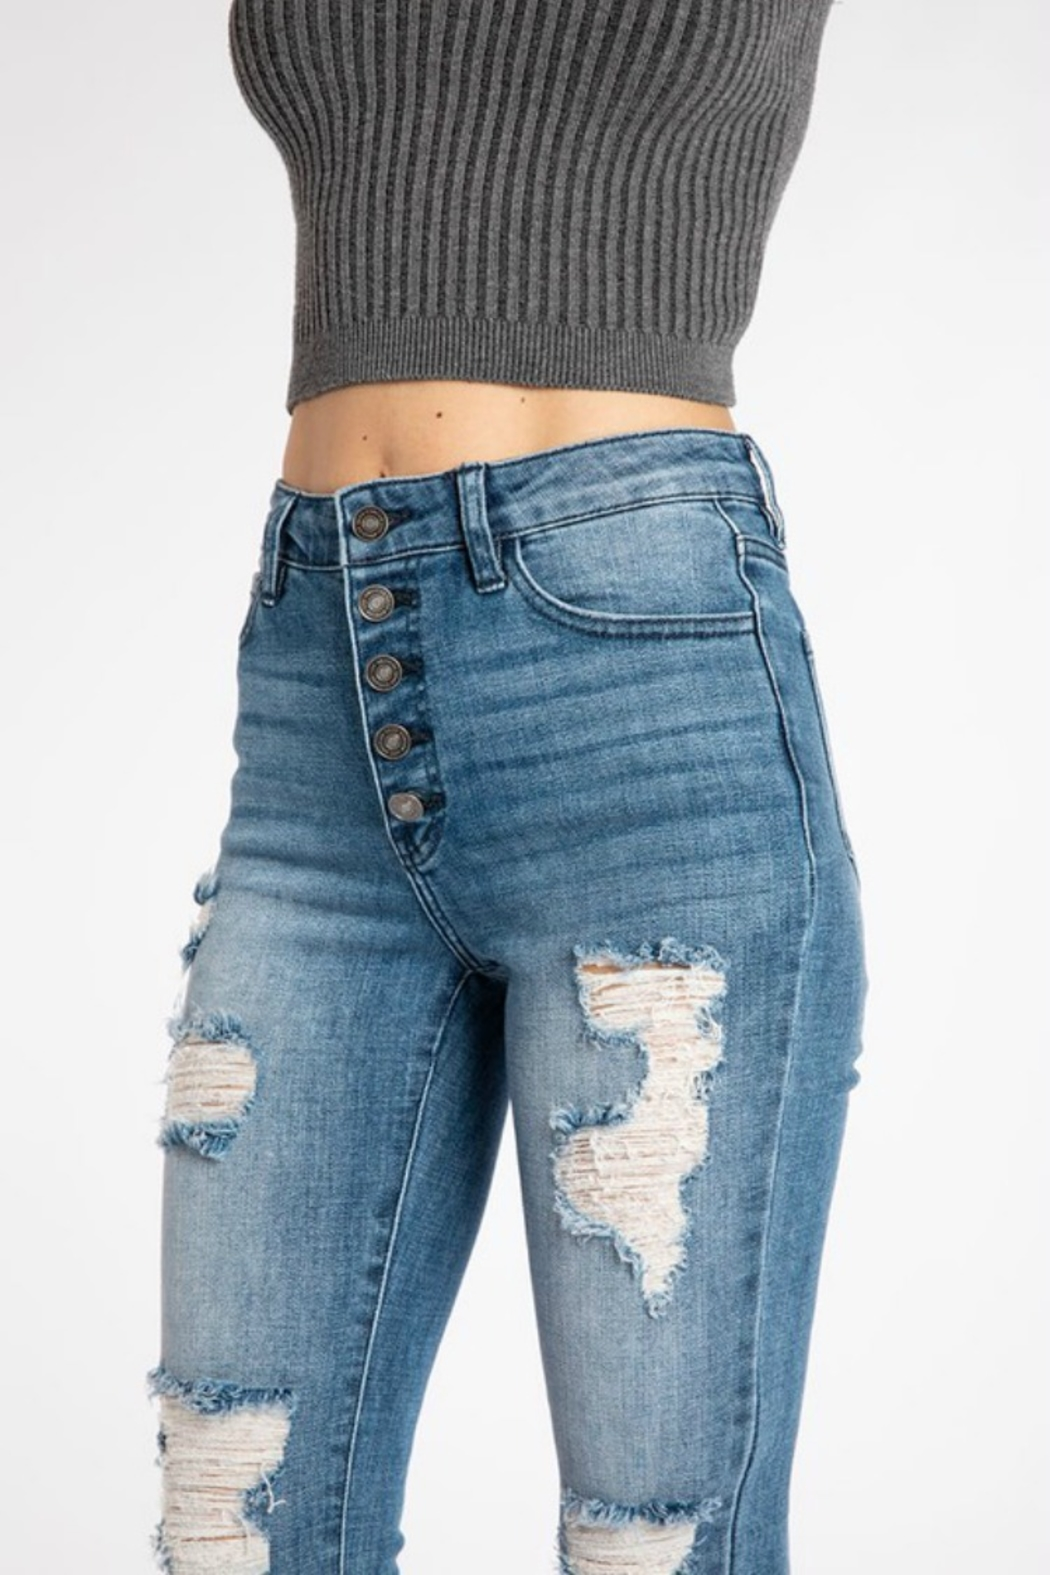 Kan Can DISTRESSED GEMMA HIGH RISE - Front Full Image